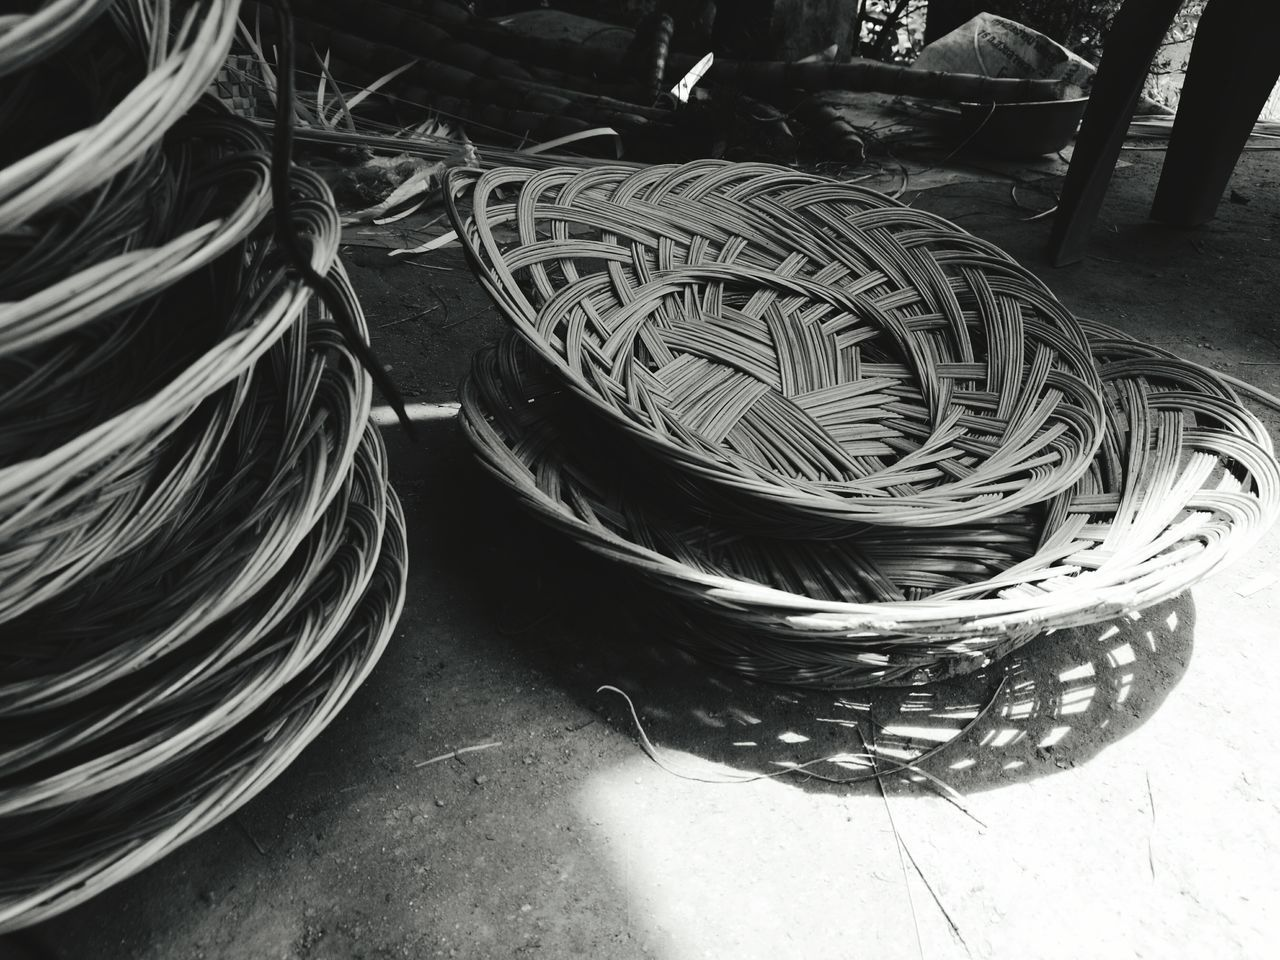 """ Crafts vernacular of the south basket for fruit"" 4/10/2016 Crafts No People Weave Weaves Handicrafts Handicraft Vernacular Vernacular Photography Flock Thailand Thai Thai Product"